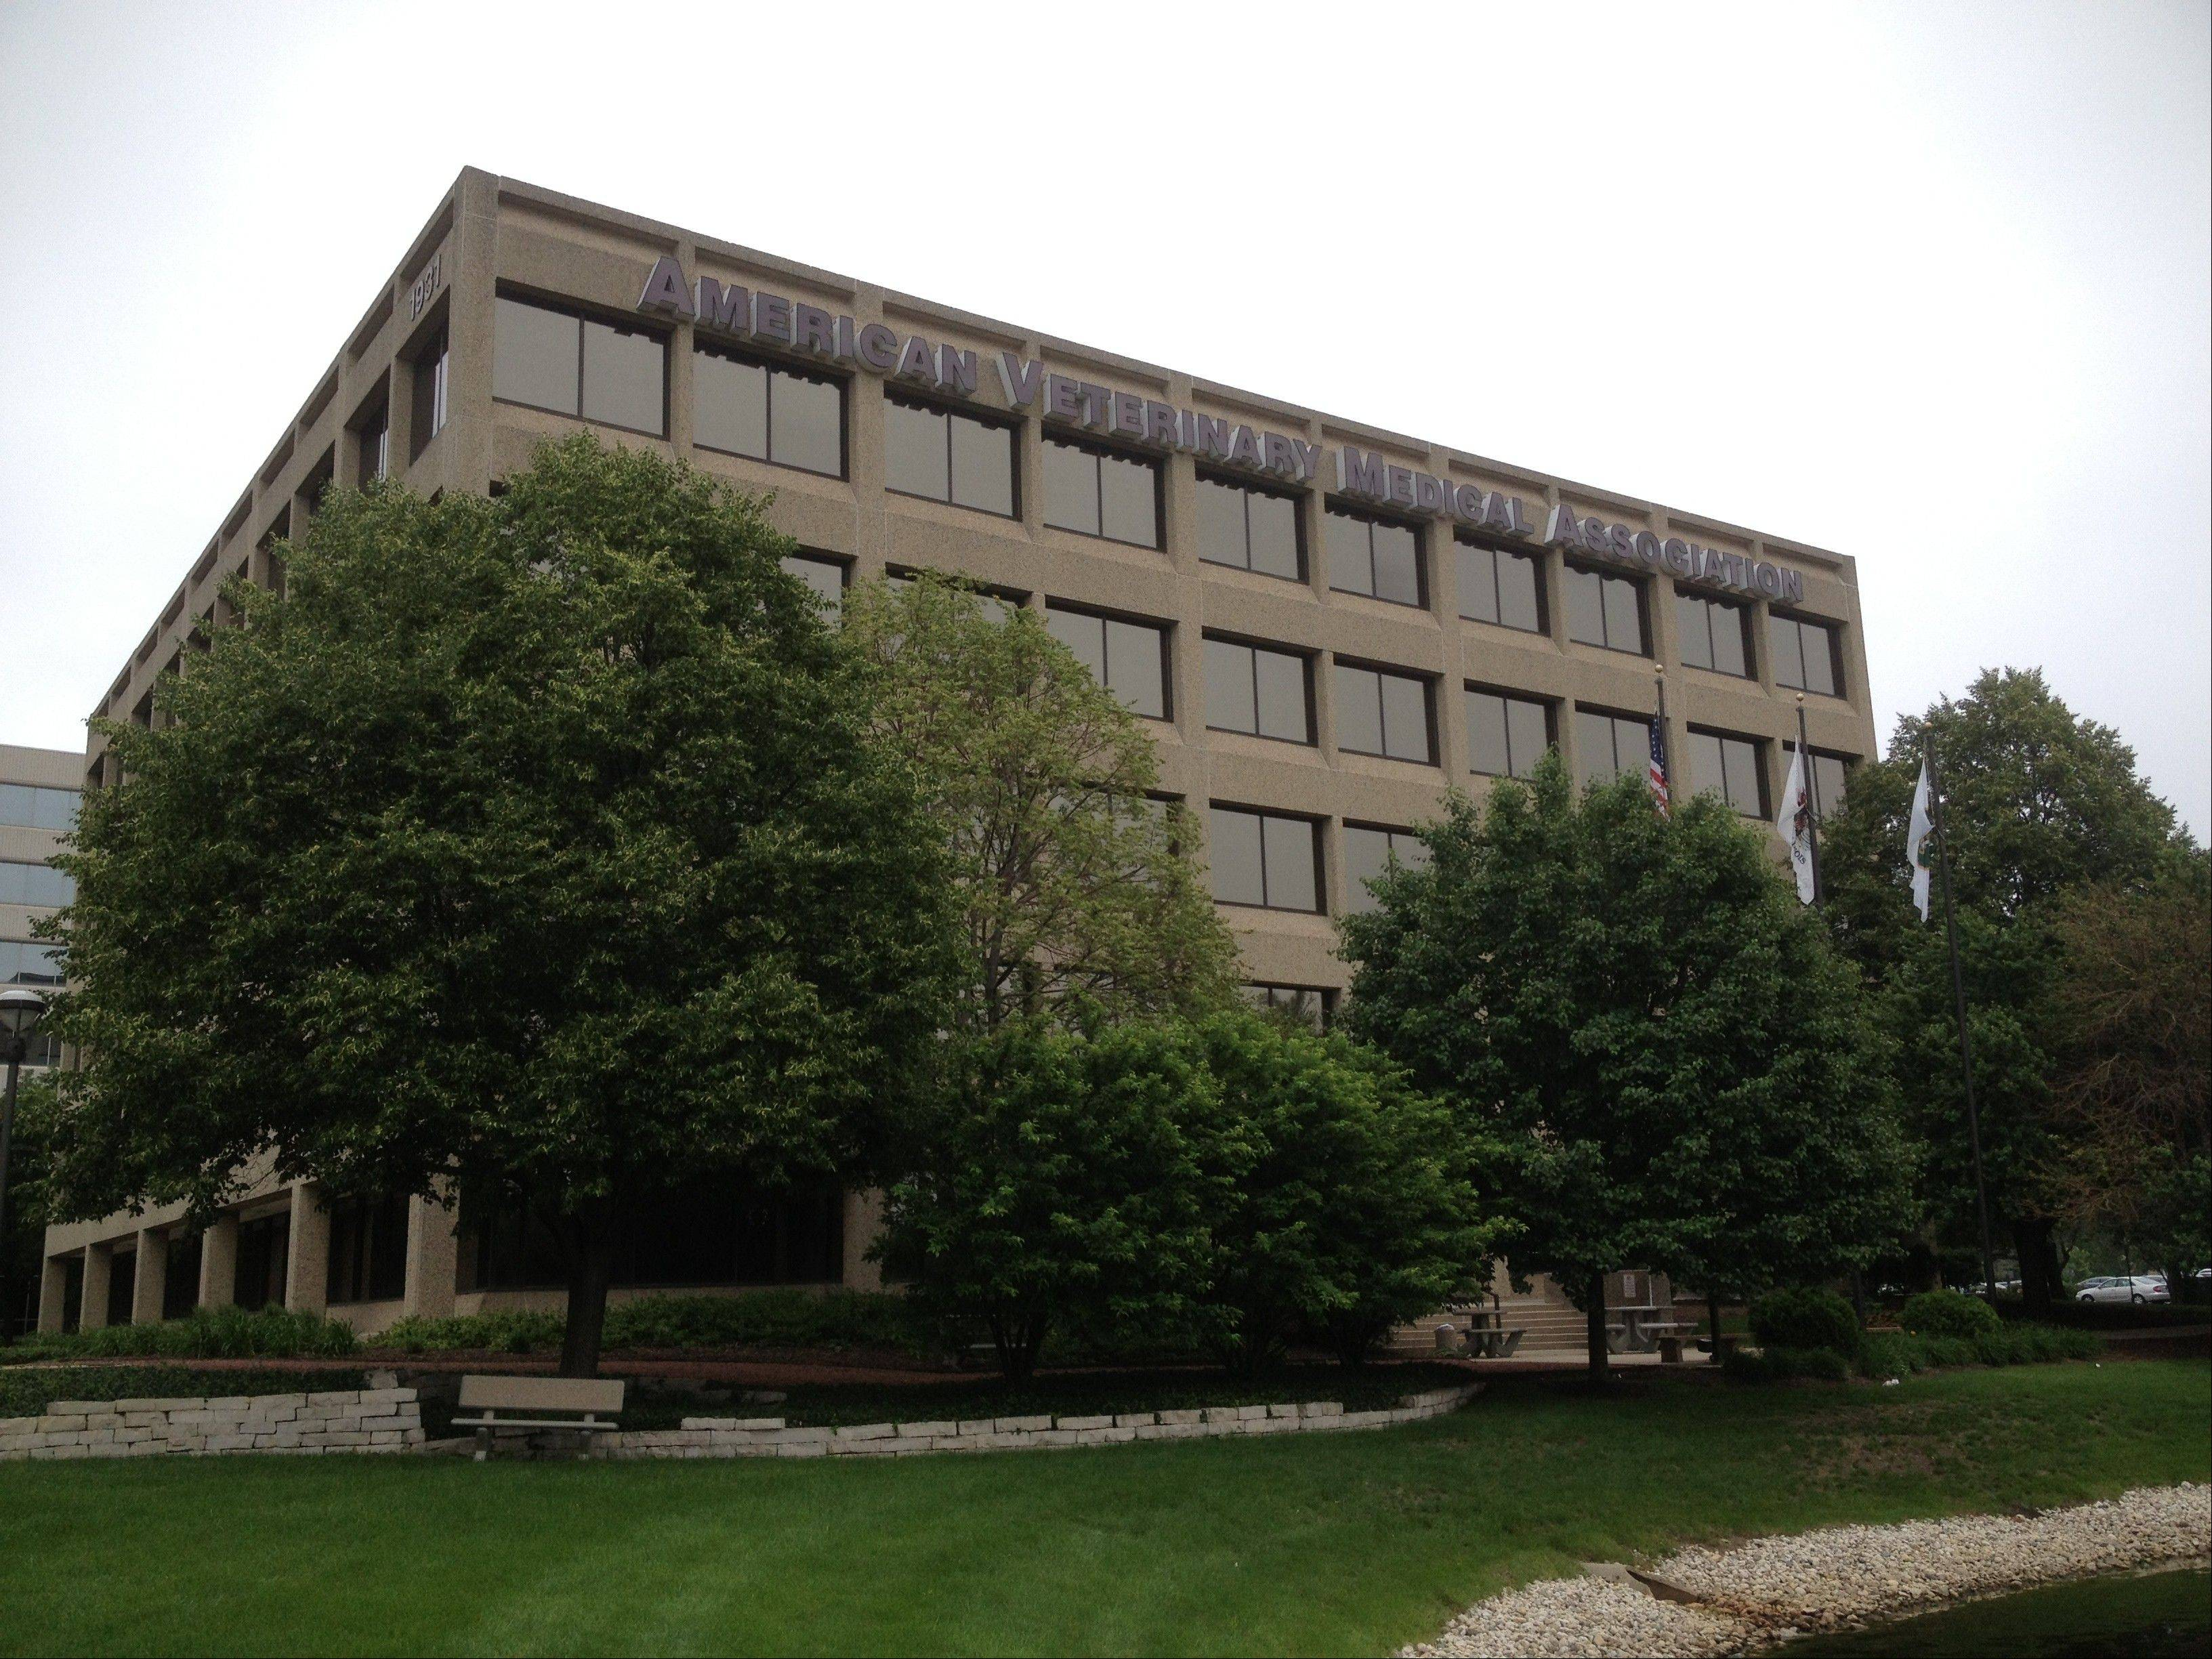 The American Veterinary Medical Association has been based in Schaumburg for 38 of its 150-year existence. This building at 1931 N. Meacham Road has been the group's headquarters since 1991.